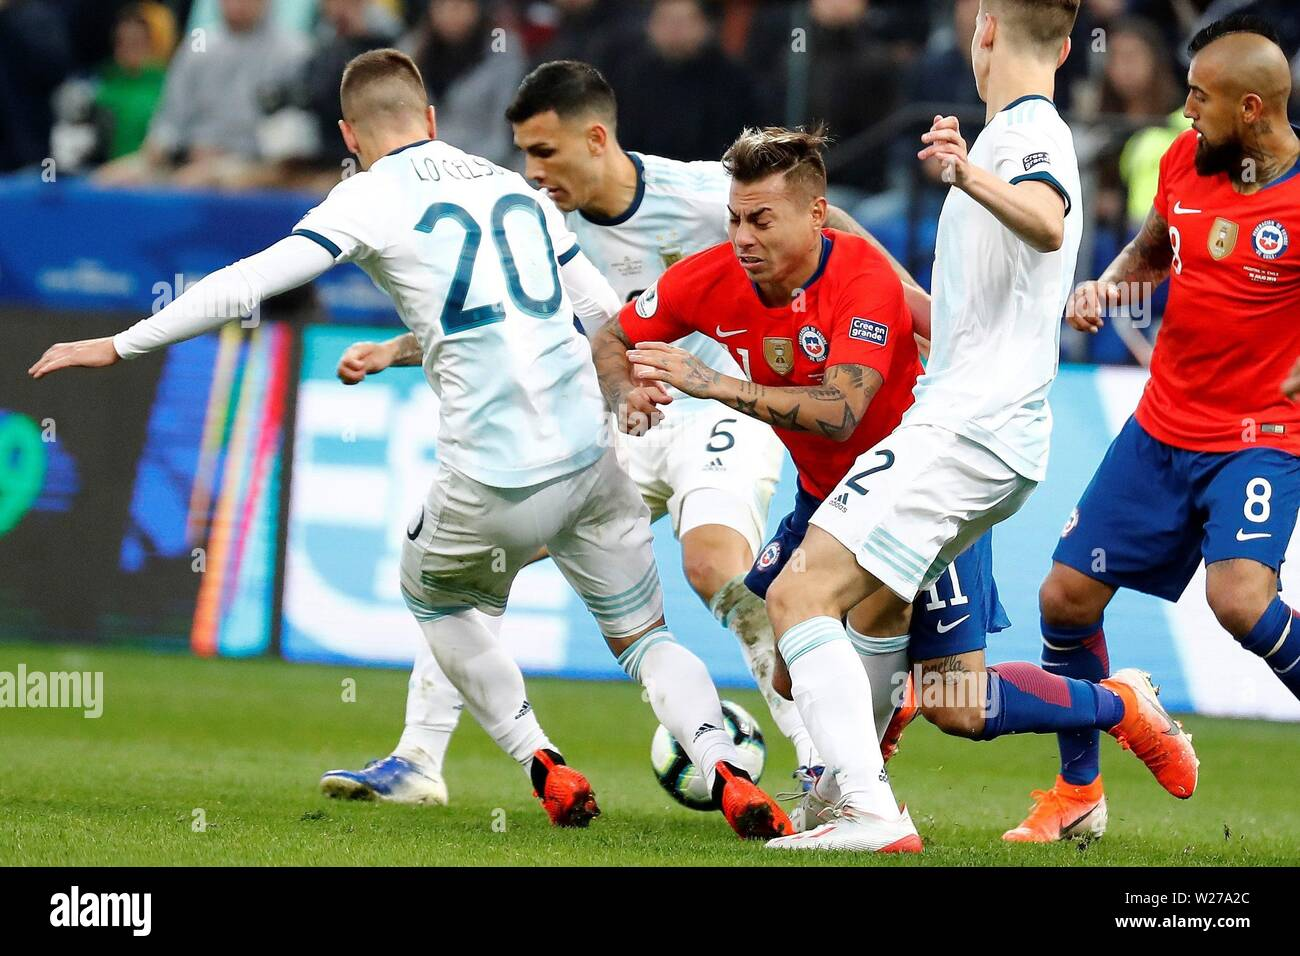 Sao Paulo, Brazil. 06th July, 2019. Chilean Eduardo Vargas (C) vies for the ball with Argentine players, during the Copa America 2019 3rd place soccer match between Argentina and Chile, at Arena Corinthians Stadium in Sao Paulo, Brazil, 6 July 2019. Credit: Sebastiao Moreira/EFE/Alamy Live News - Stock Image